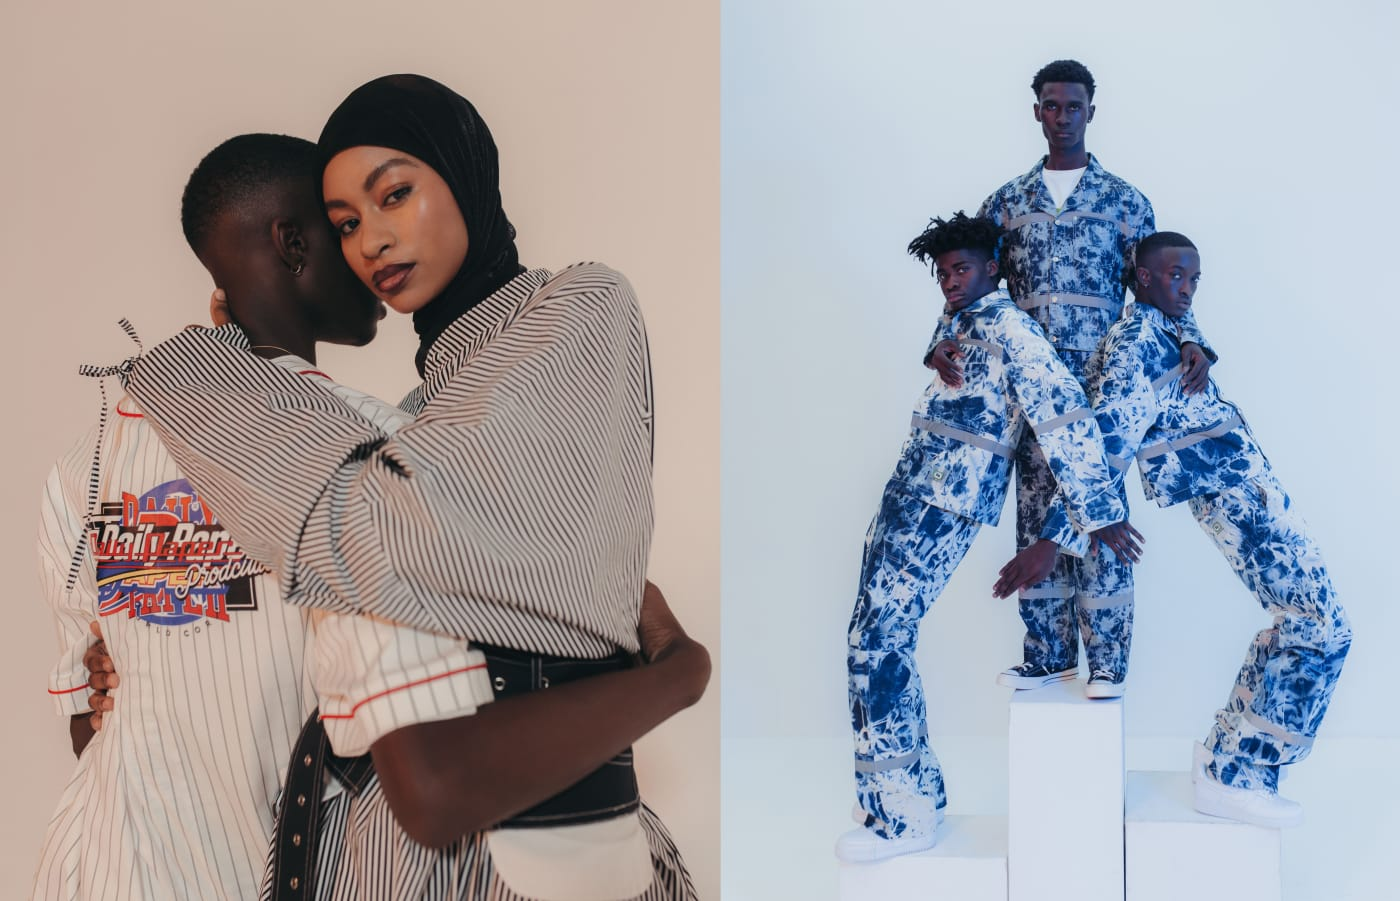 daily paper ss19 editorial header